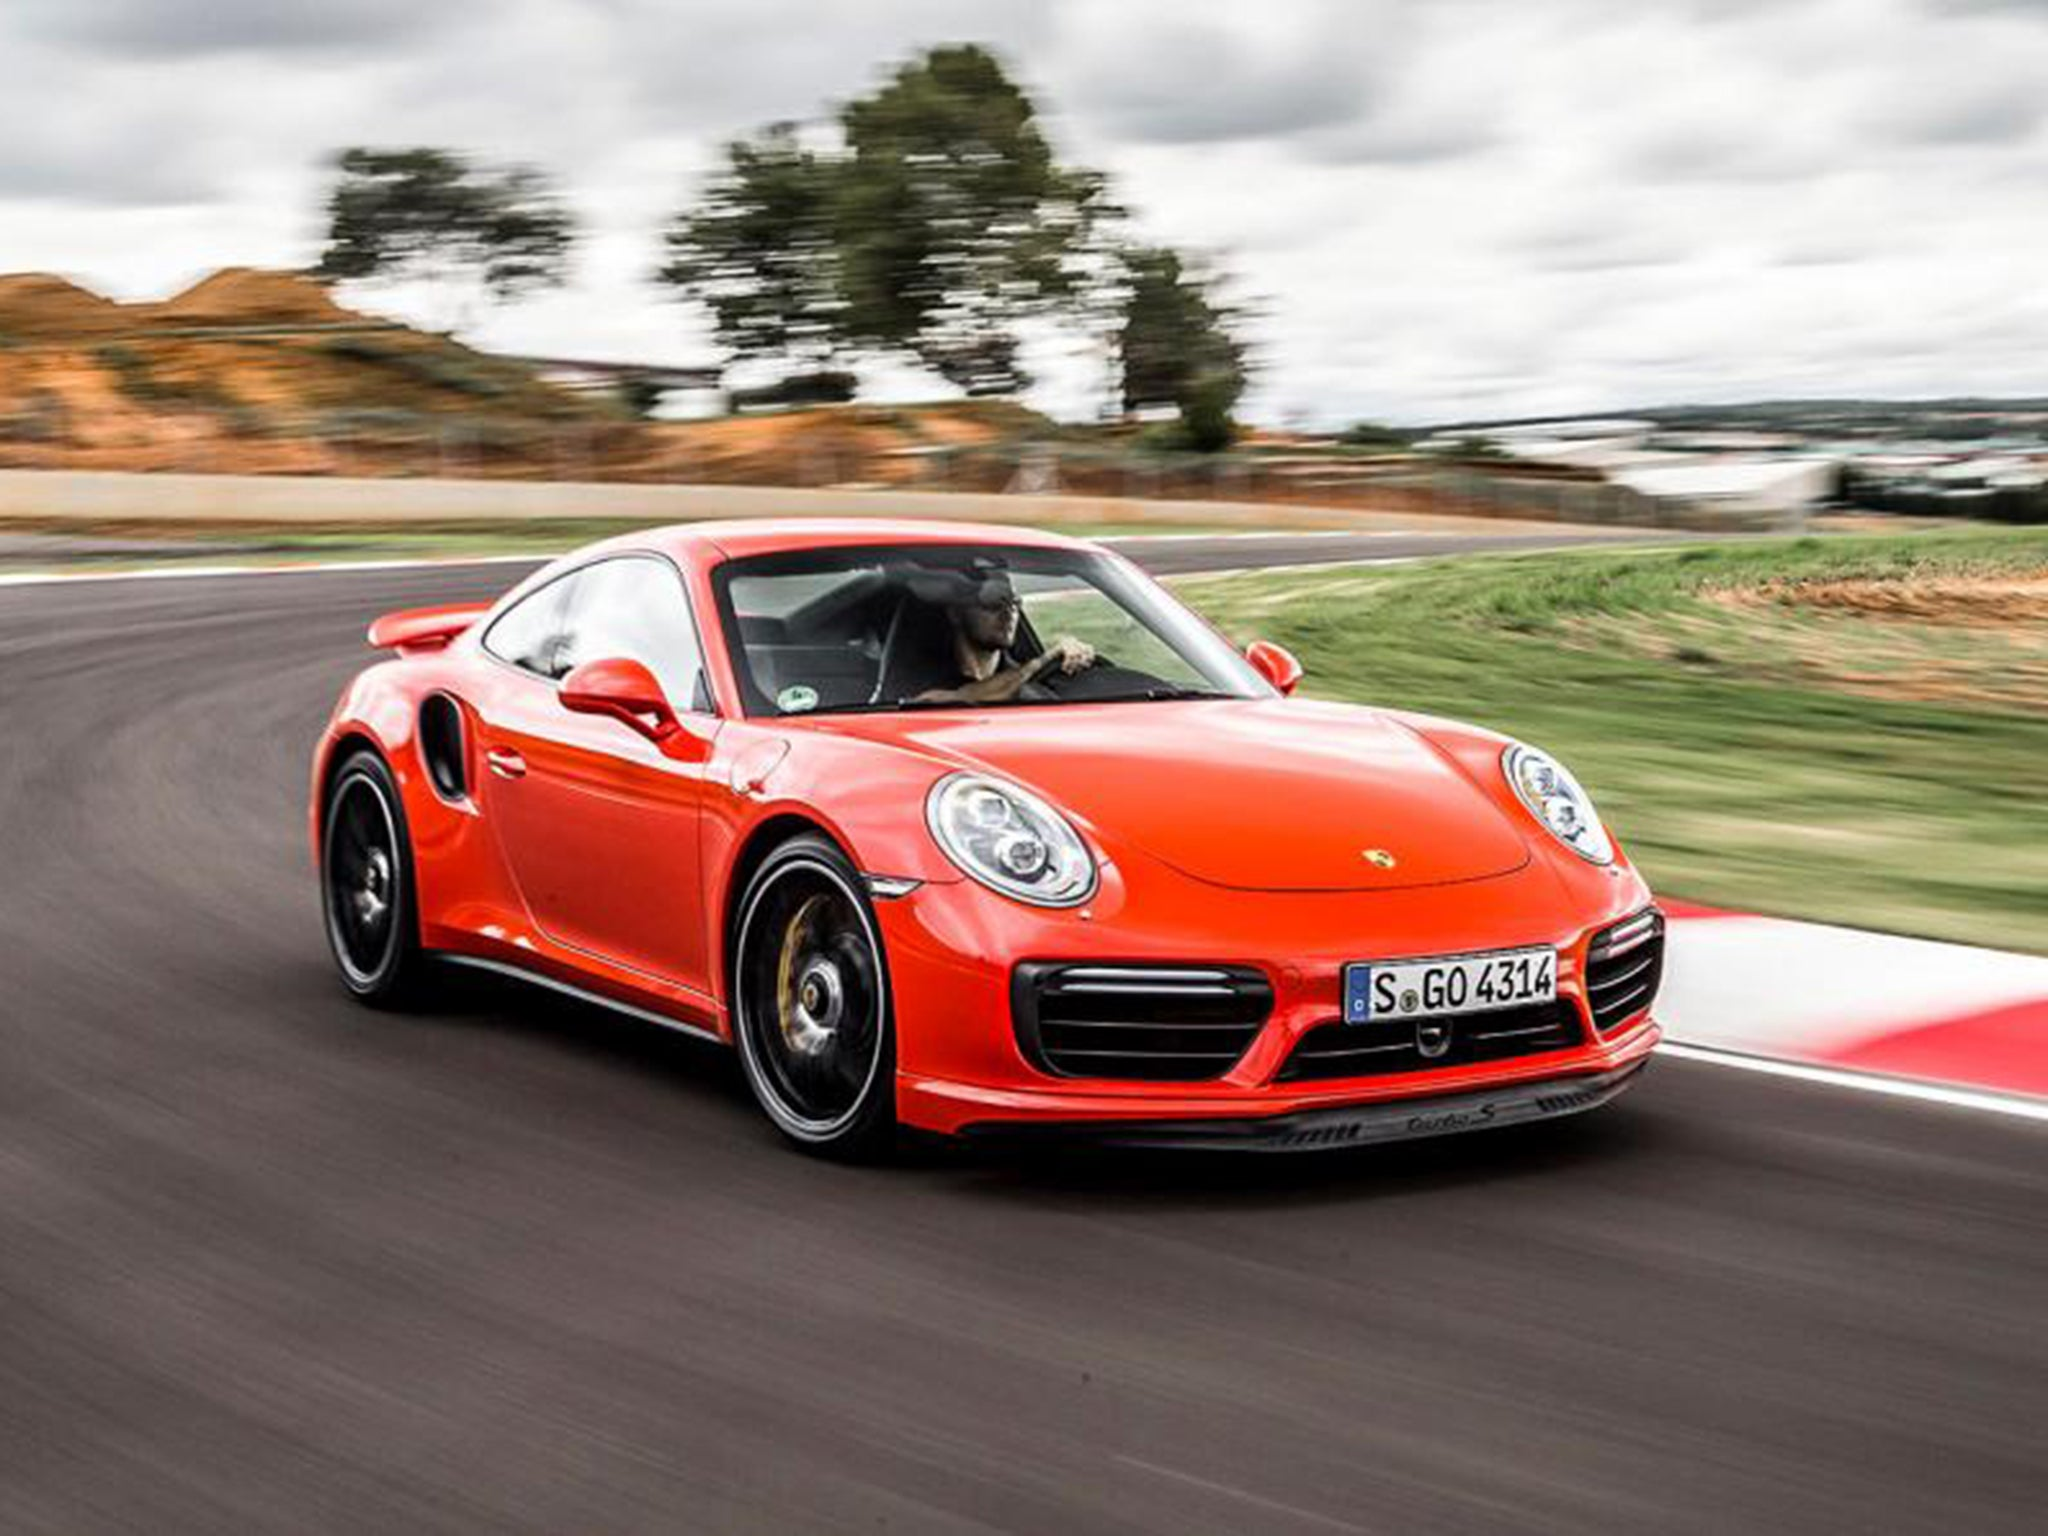 2016 porsche 911 turbo s car review porsche performance at its most princely the independent